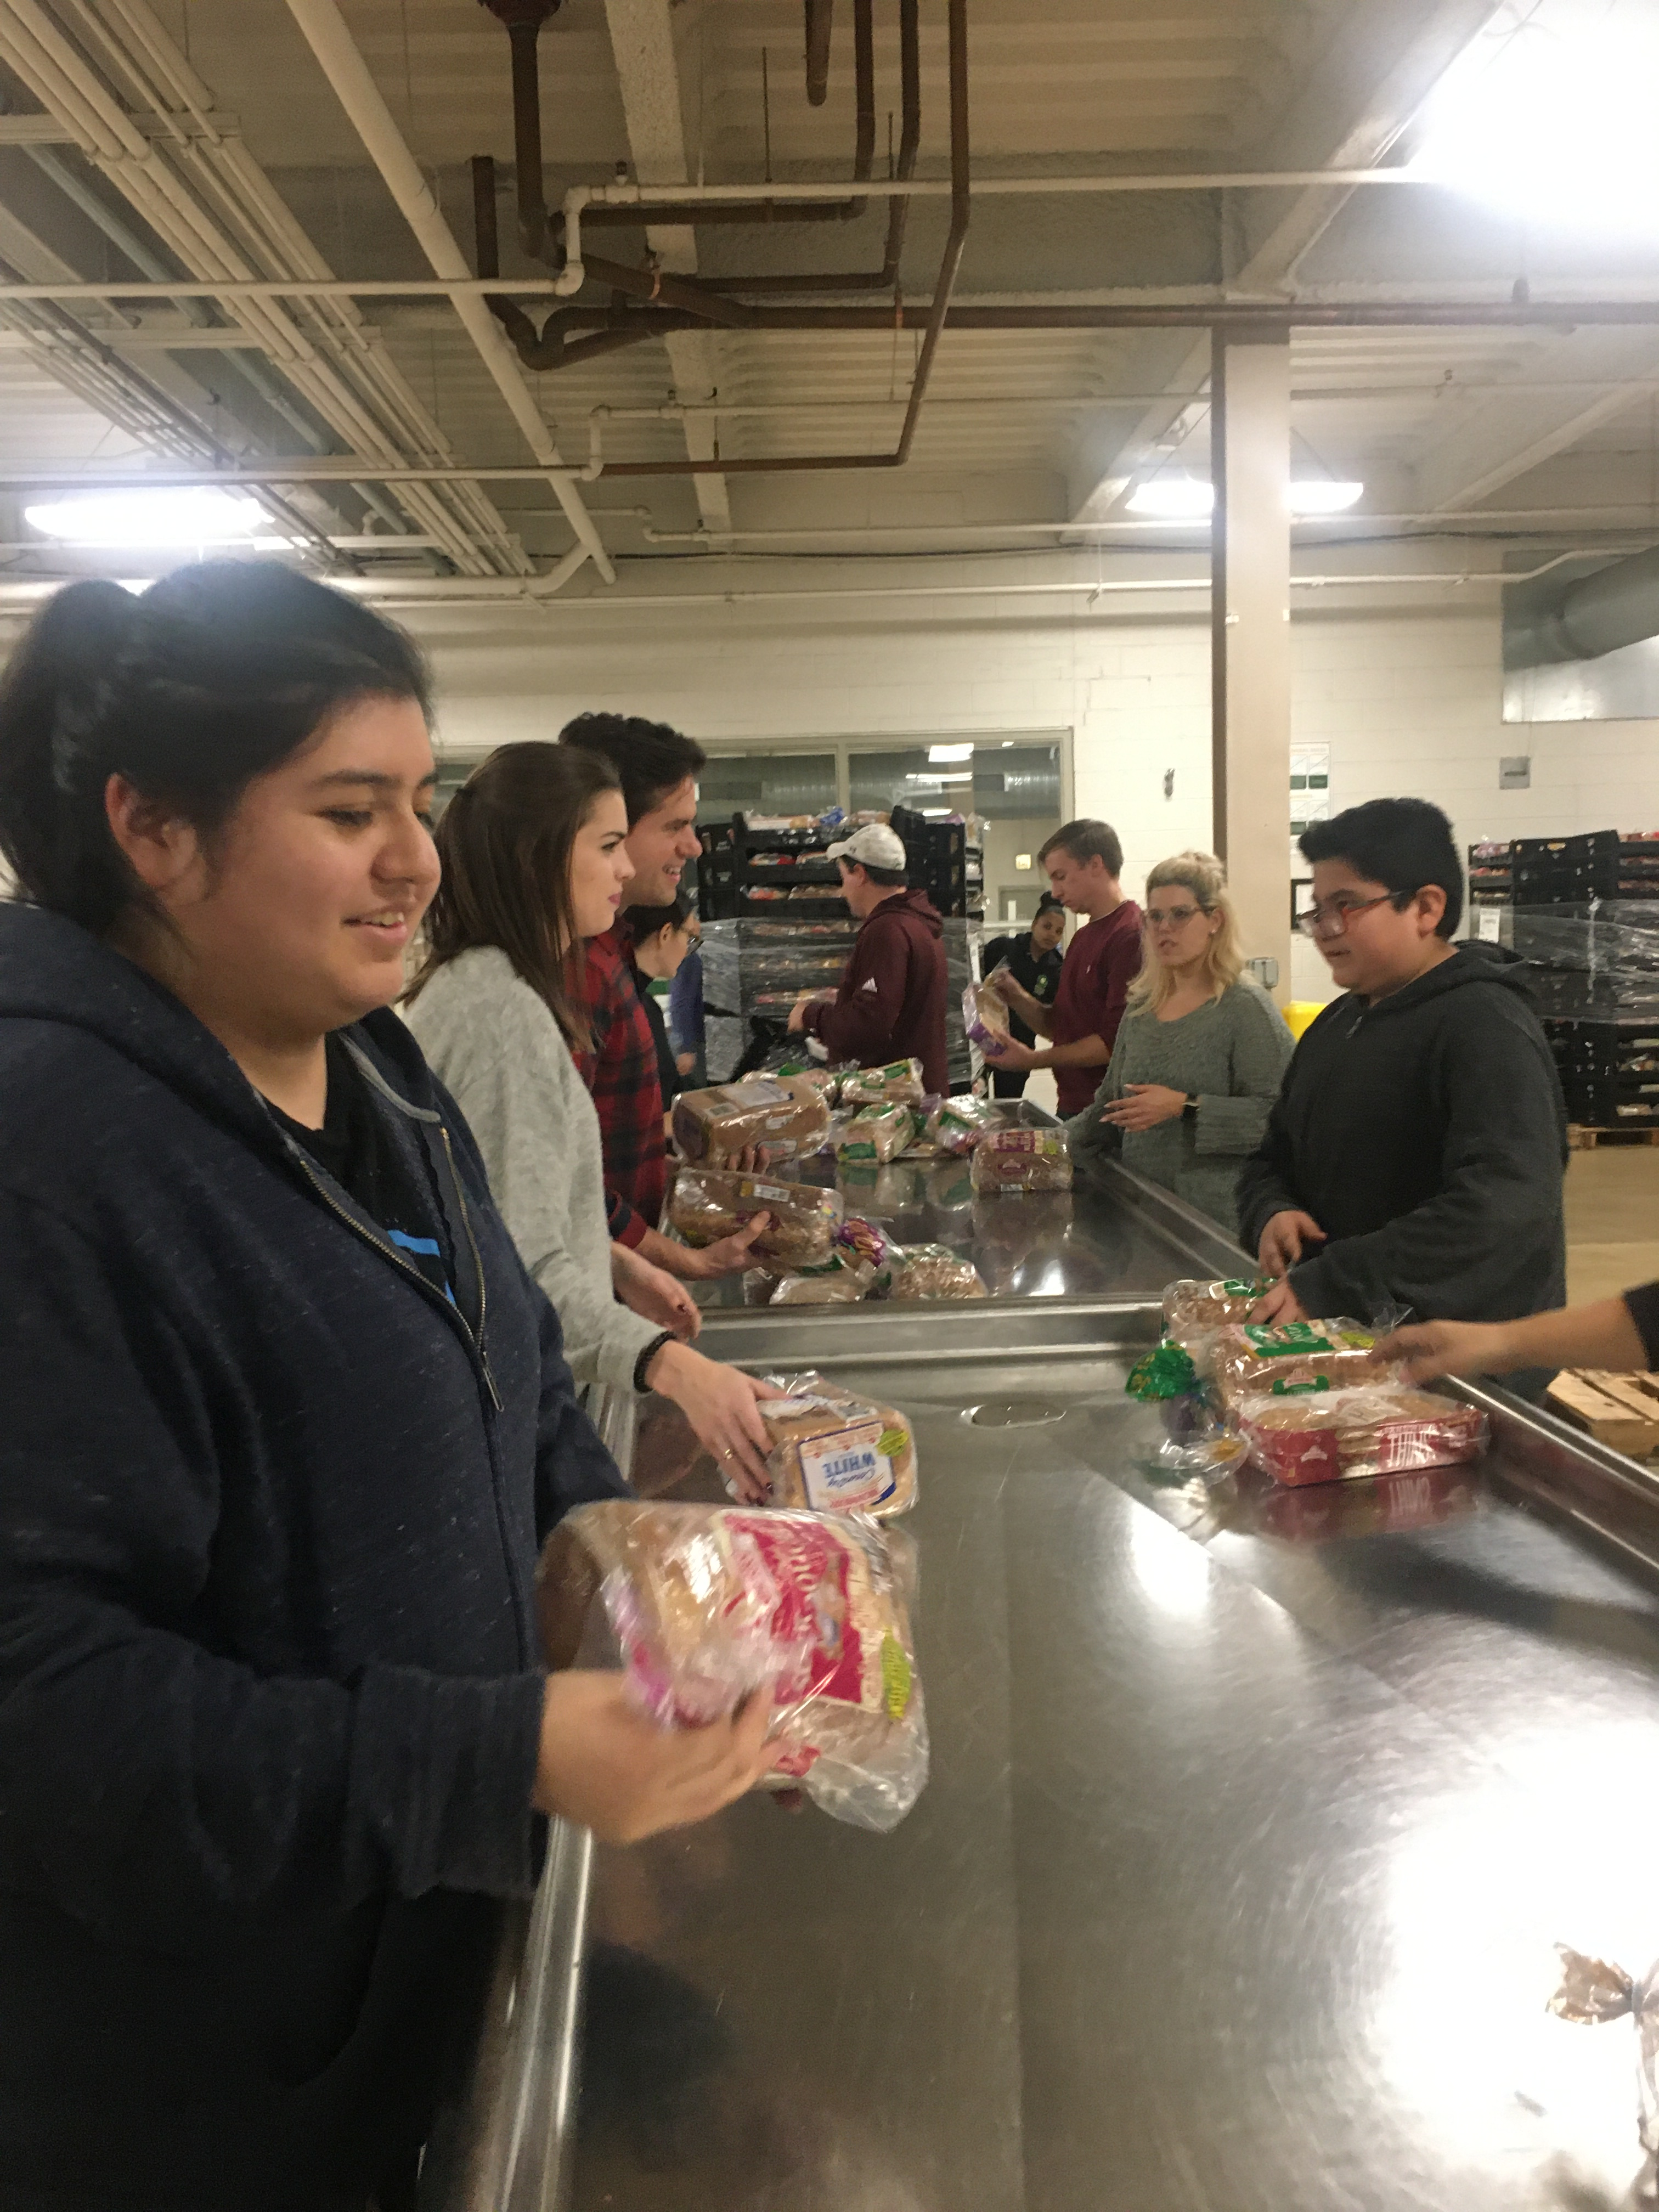 Volunteers perform quality checks on packages of bread